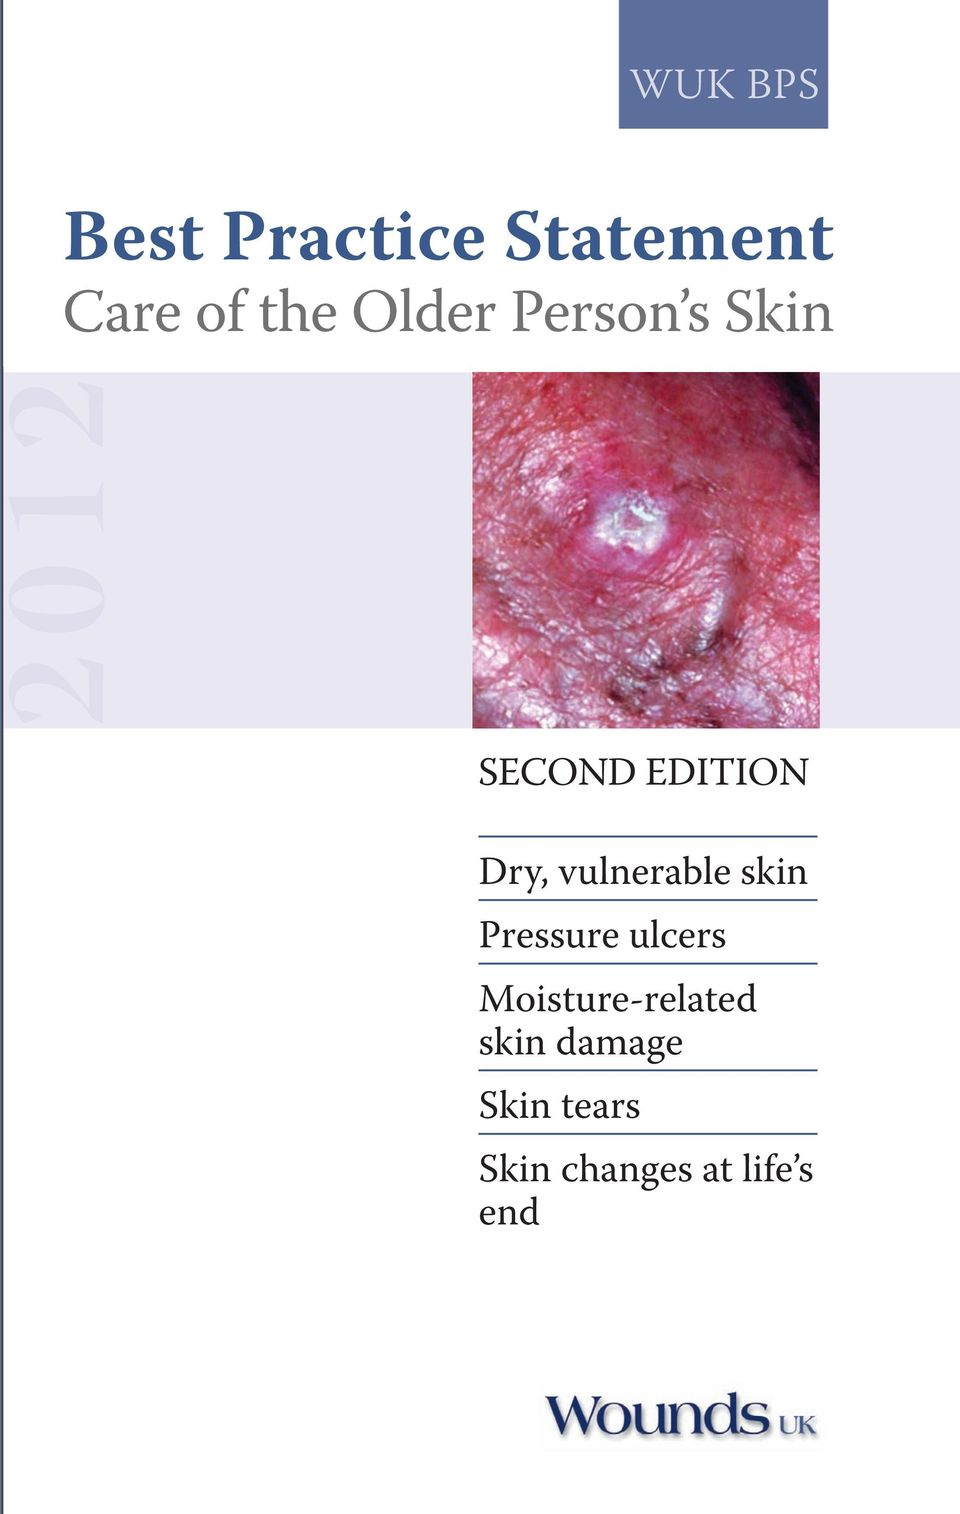 vulnerable skin Pressure ulcers